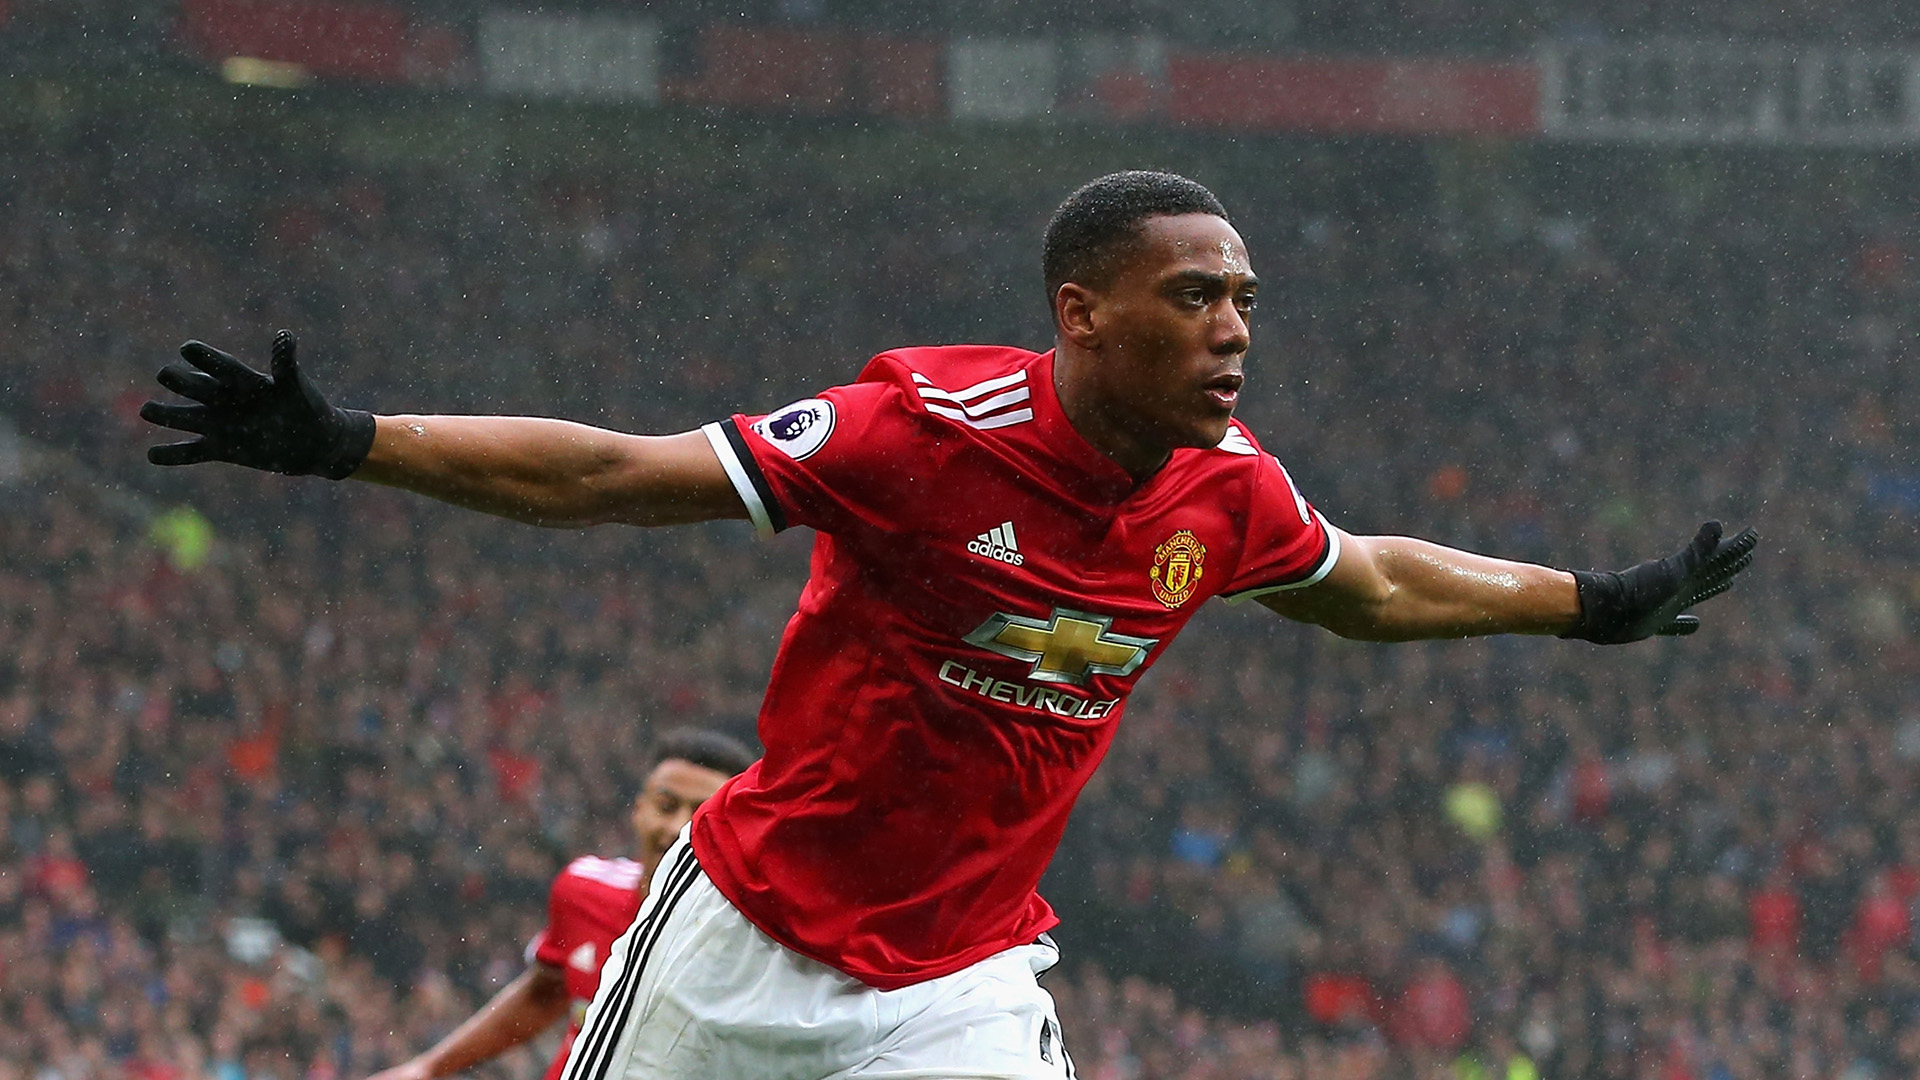 RMC Sport: AC Milan Made Attempt To Sign Man Utd's Martial